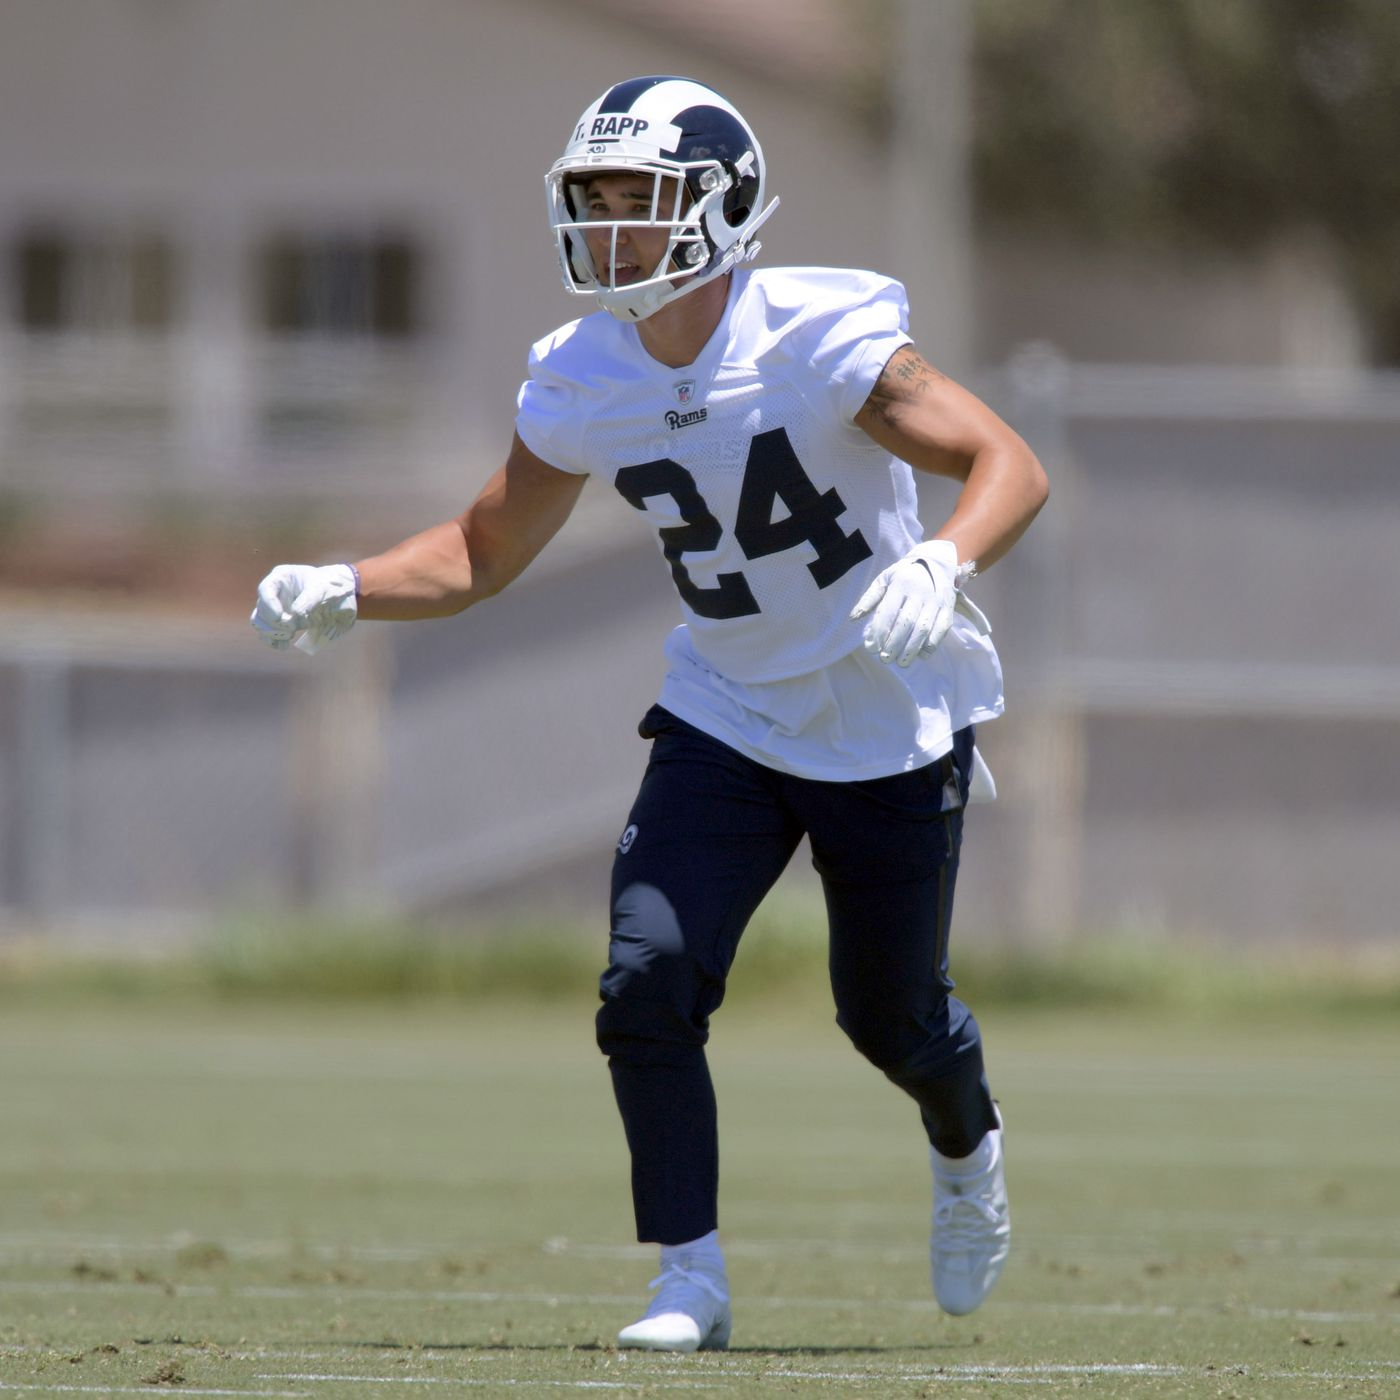 newest 59d8b 1e711 2019 Rams roster preview: S Taylor Rapp adds playmaking ...